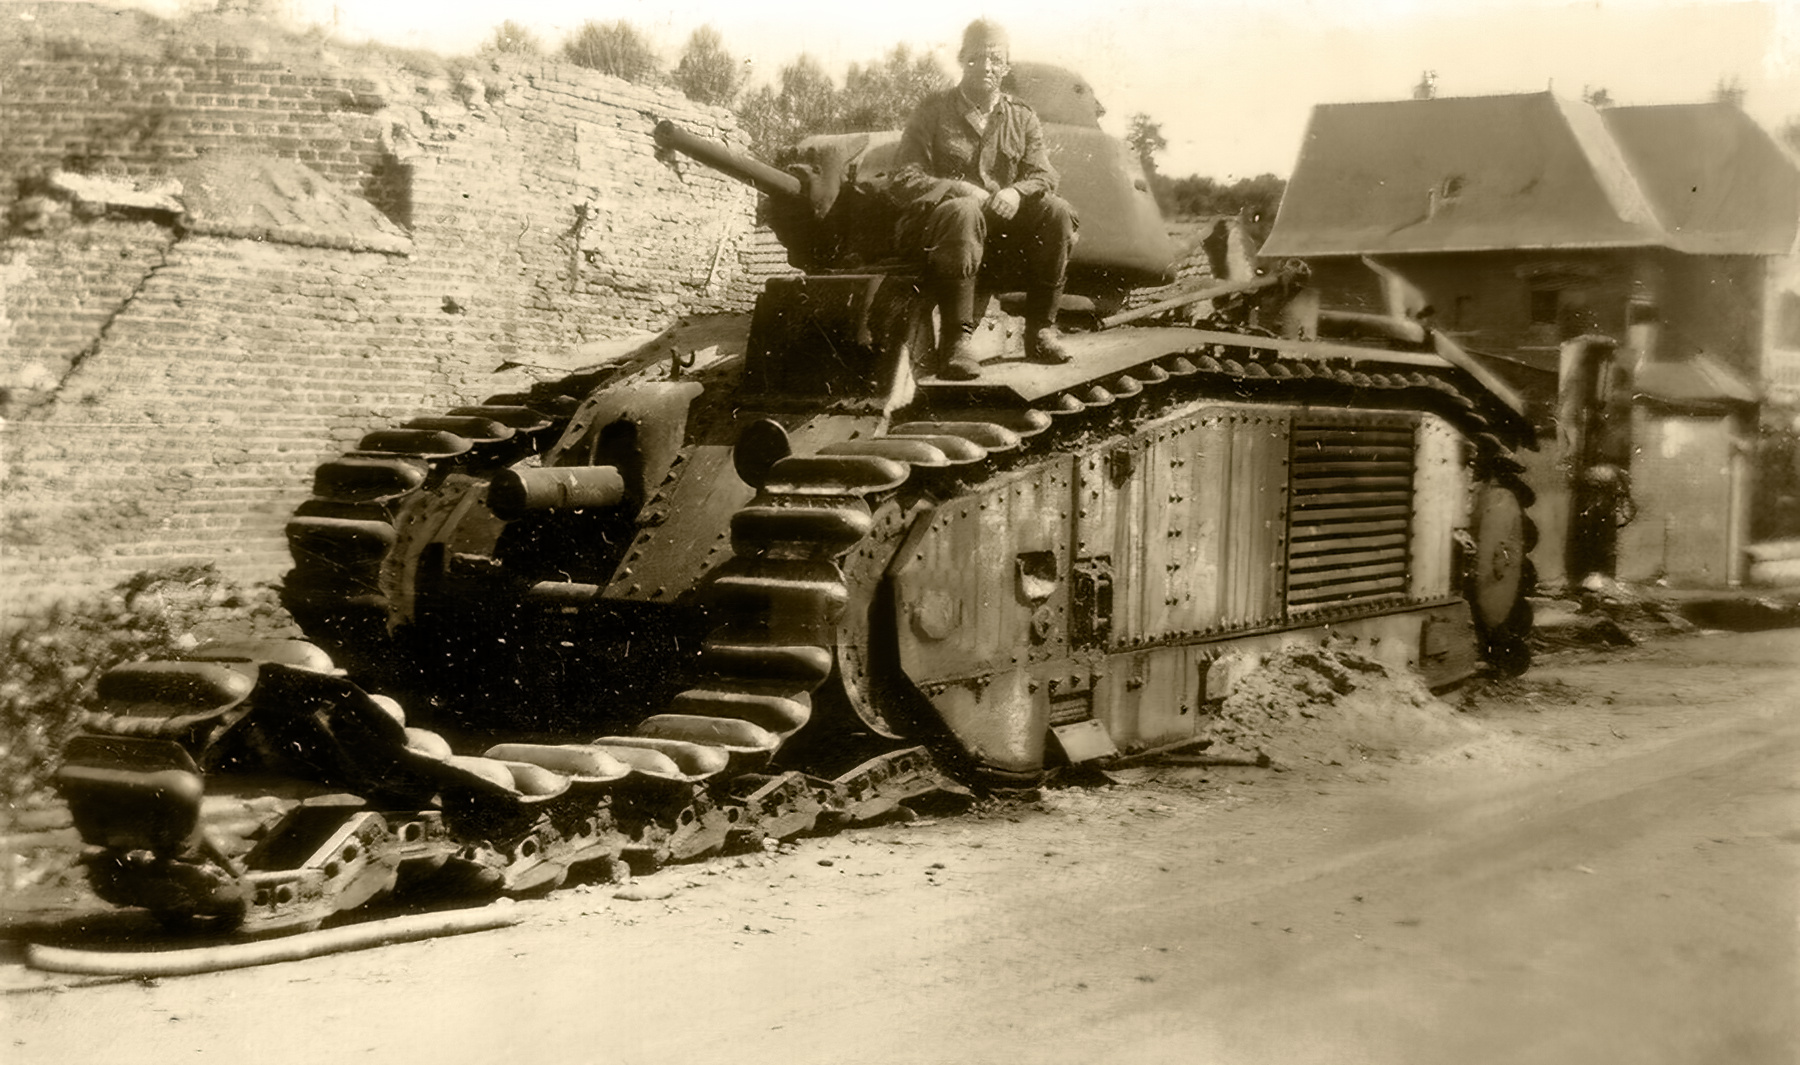 French Army Renault Char B1bis knocked out Saint Simon France May 1940 ebay 01